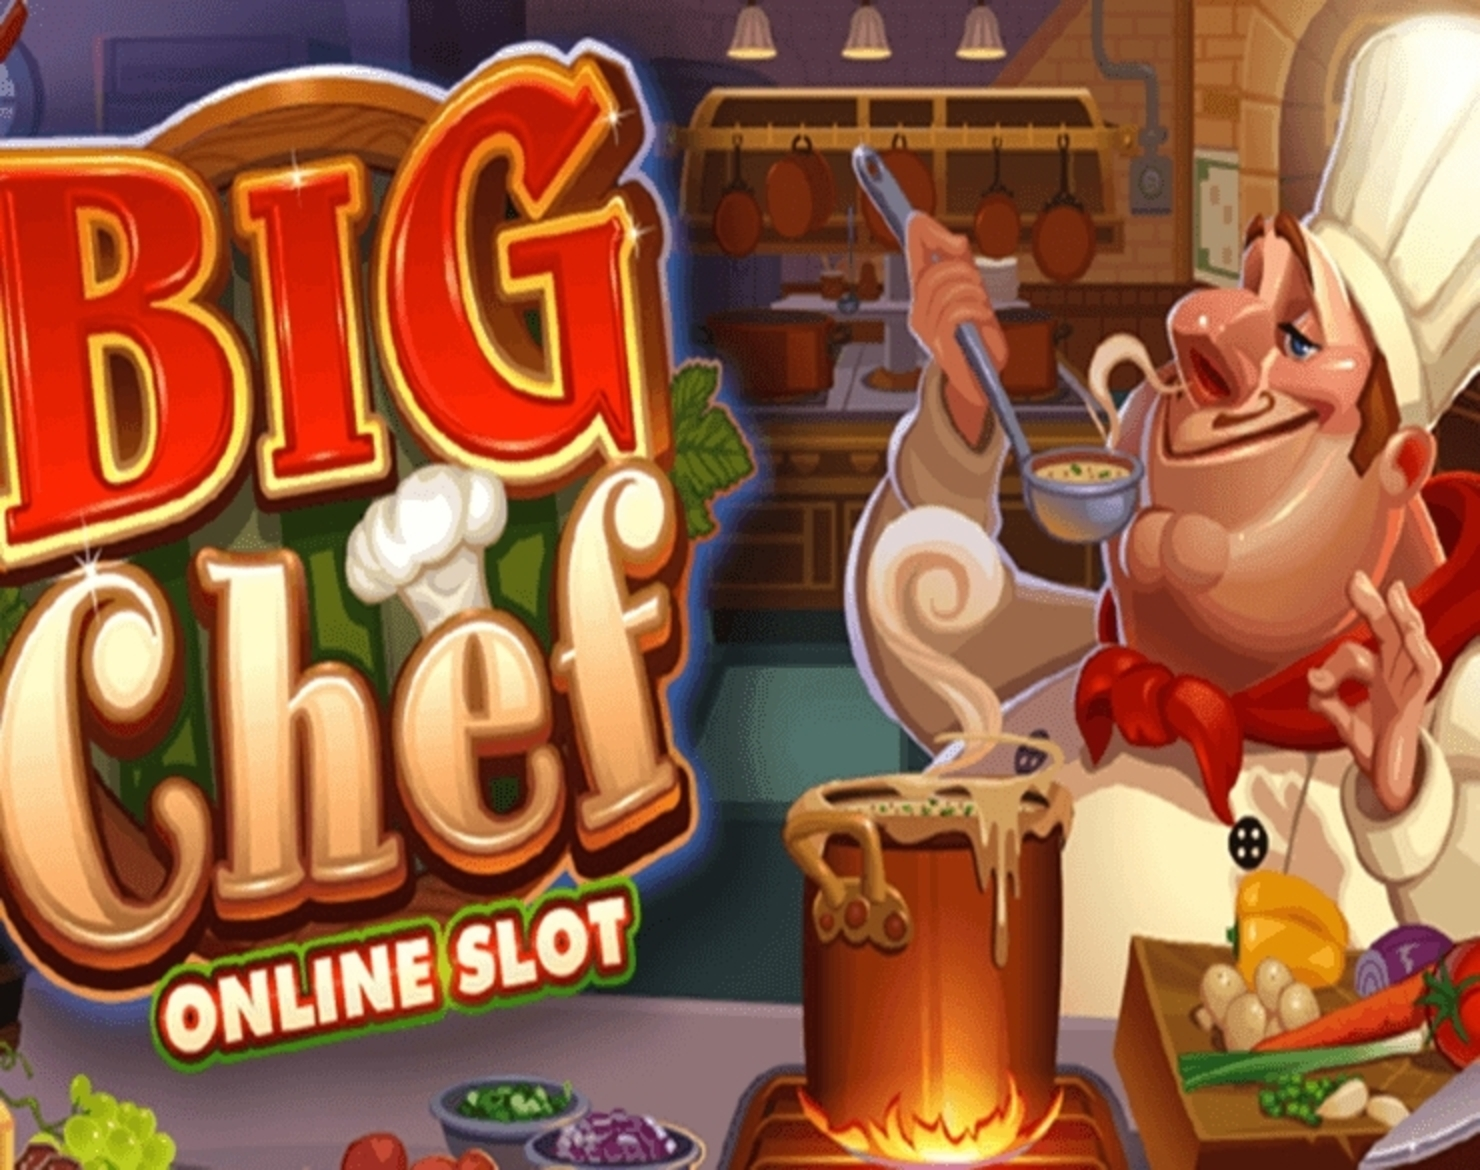 The Big Chef Online Slot Demo Game by Microgaming